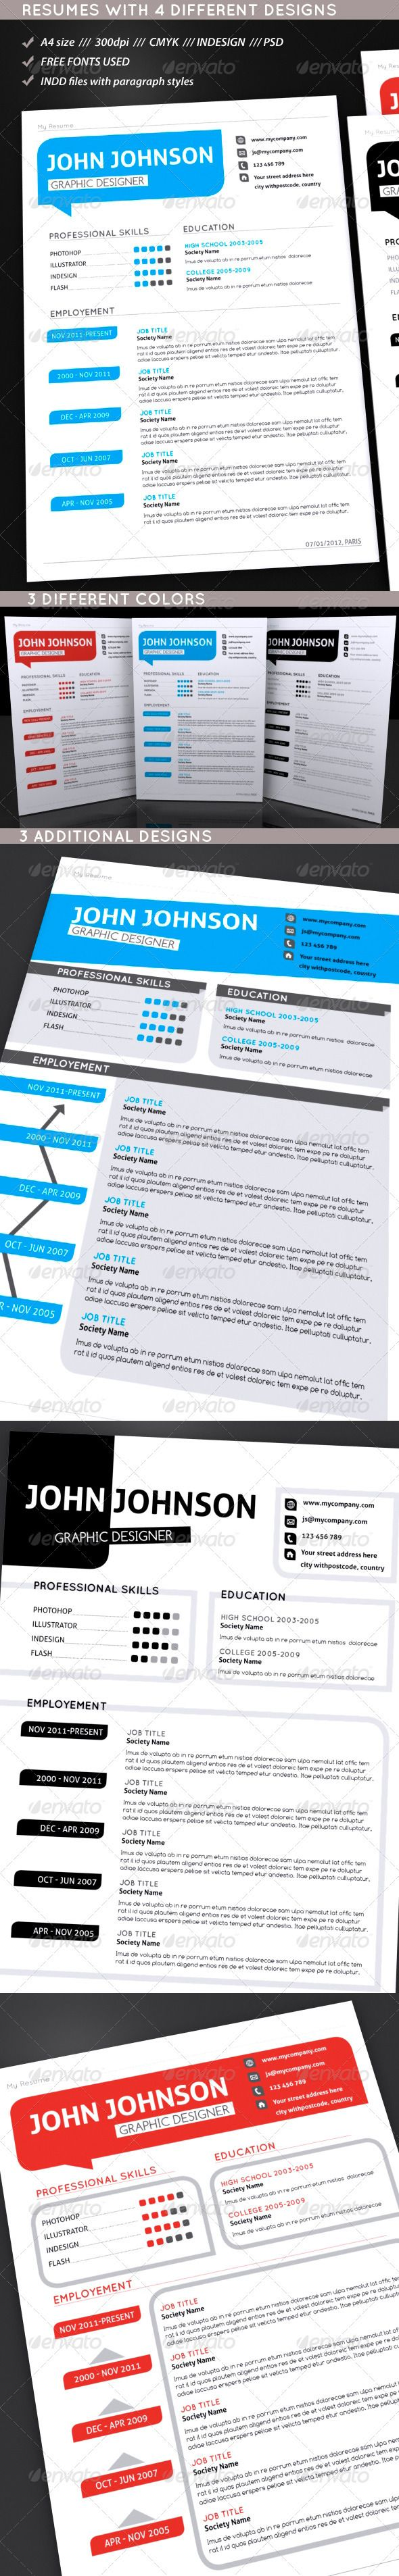 Best Modern Resumes Images On   Resume Design Resume